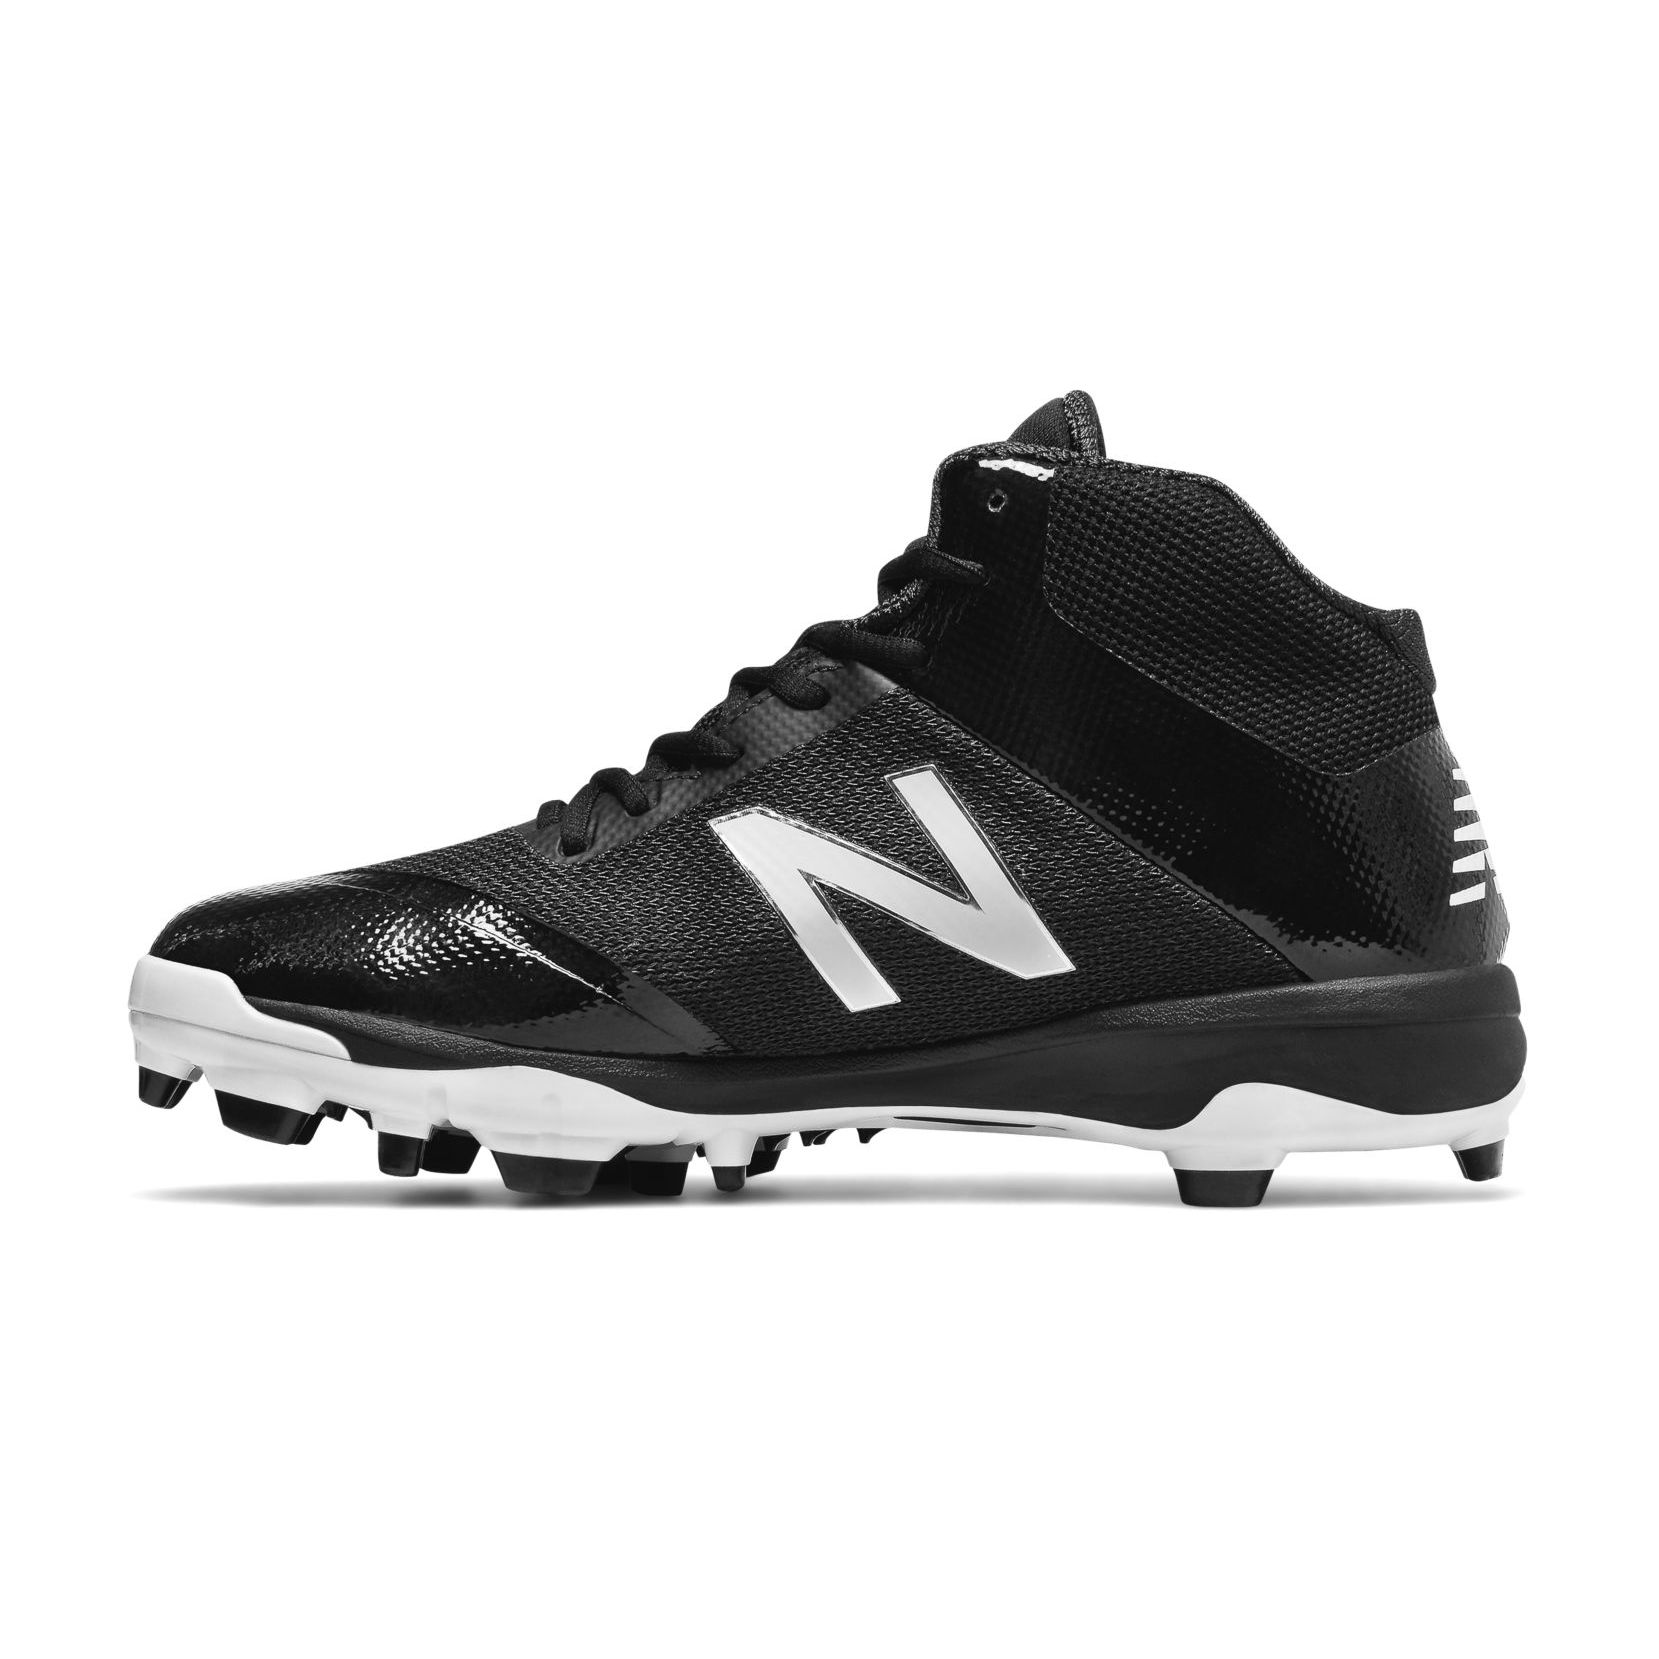 New Balance Mid Cut 4040v4 Tpu Black With White Molded Cleat